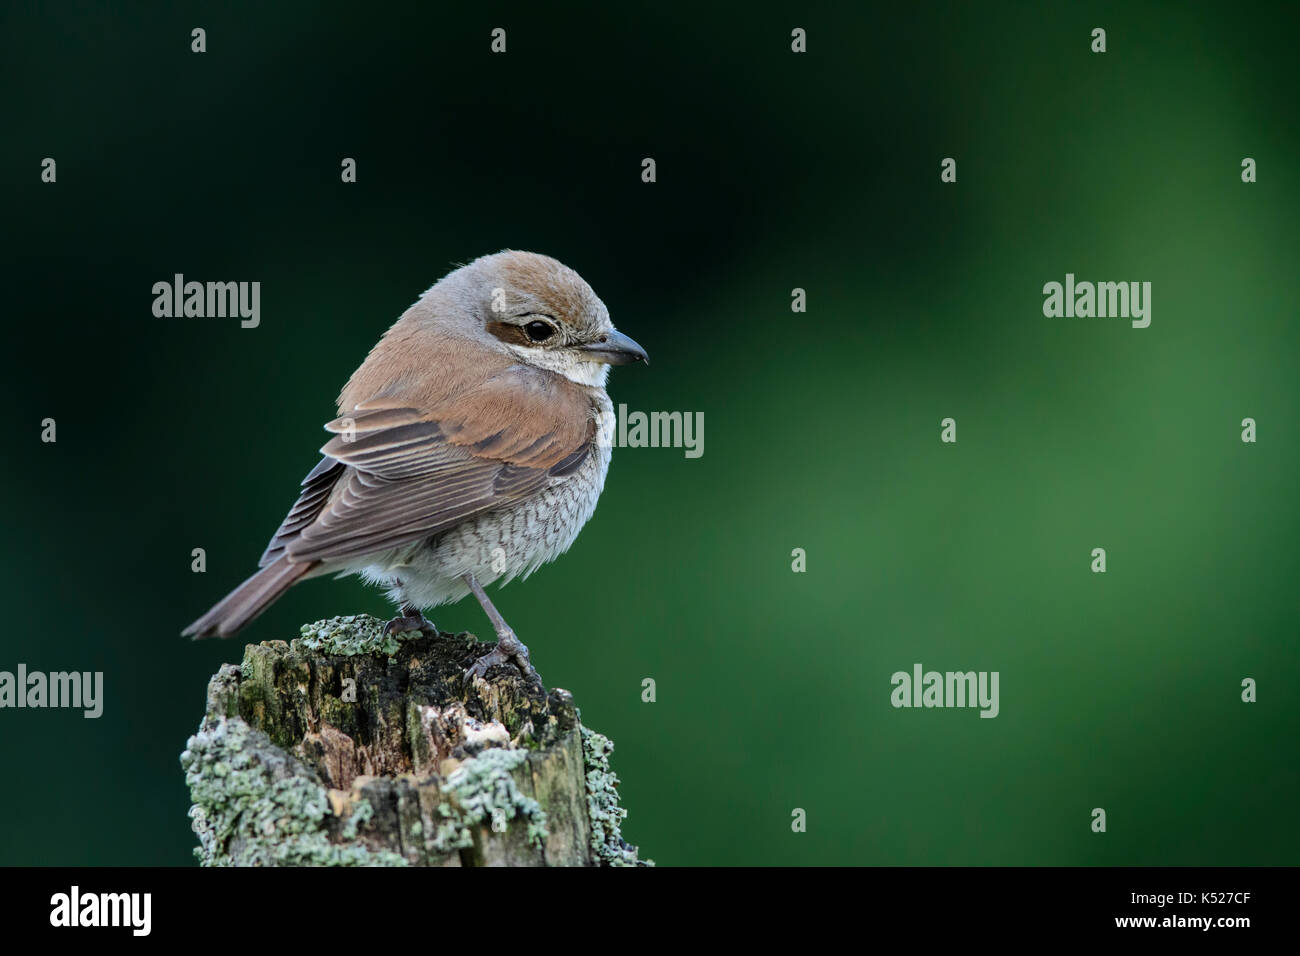 Female Red-backed Shrike (Lanius collurio) in Bialowieza National Park. July, 2017. - Stock Image